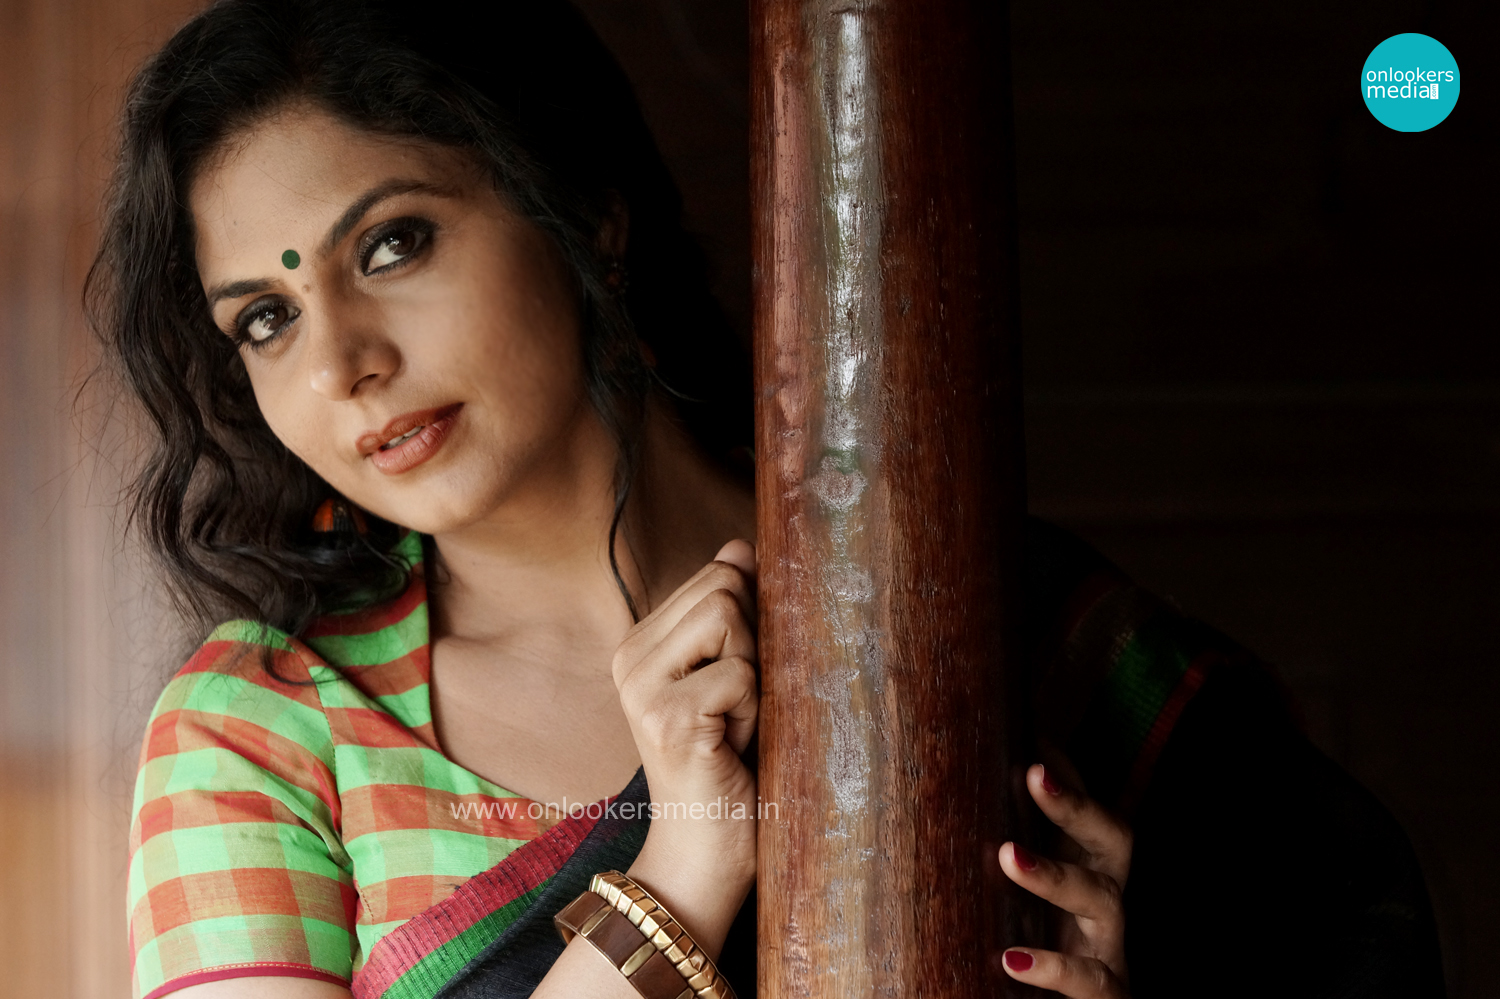 Asha Sharath in Angles Malayalam Movie-Stills-Images-Photos-Onlookers Media